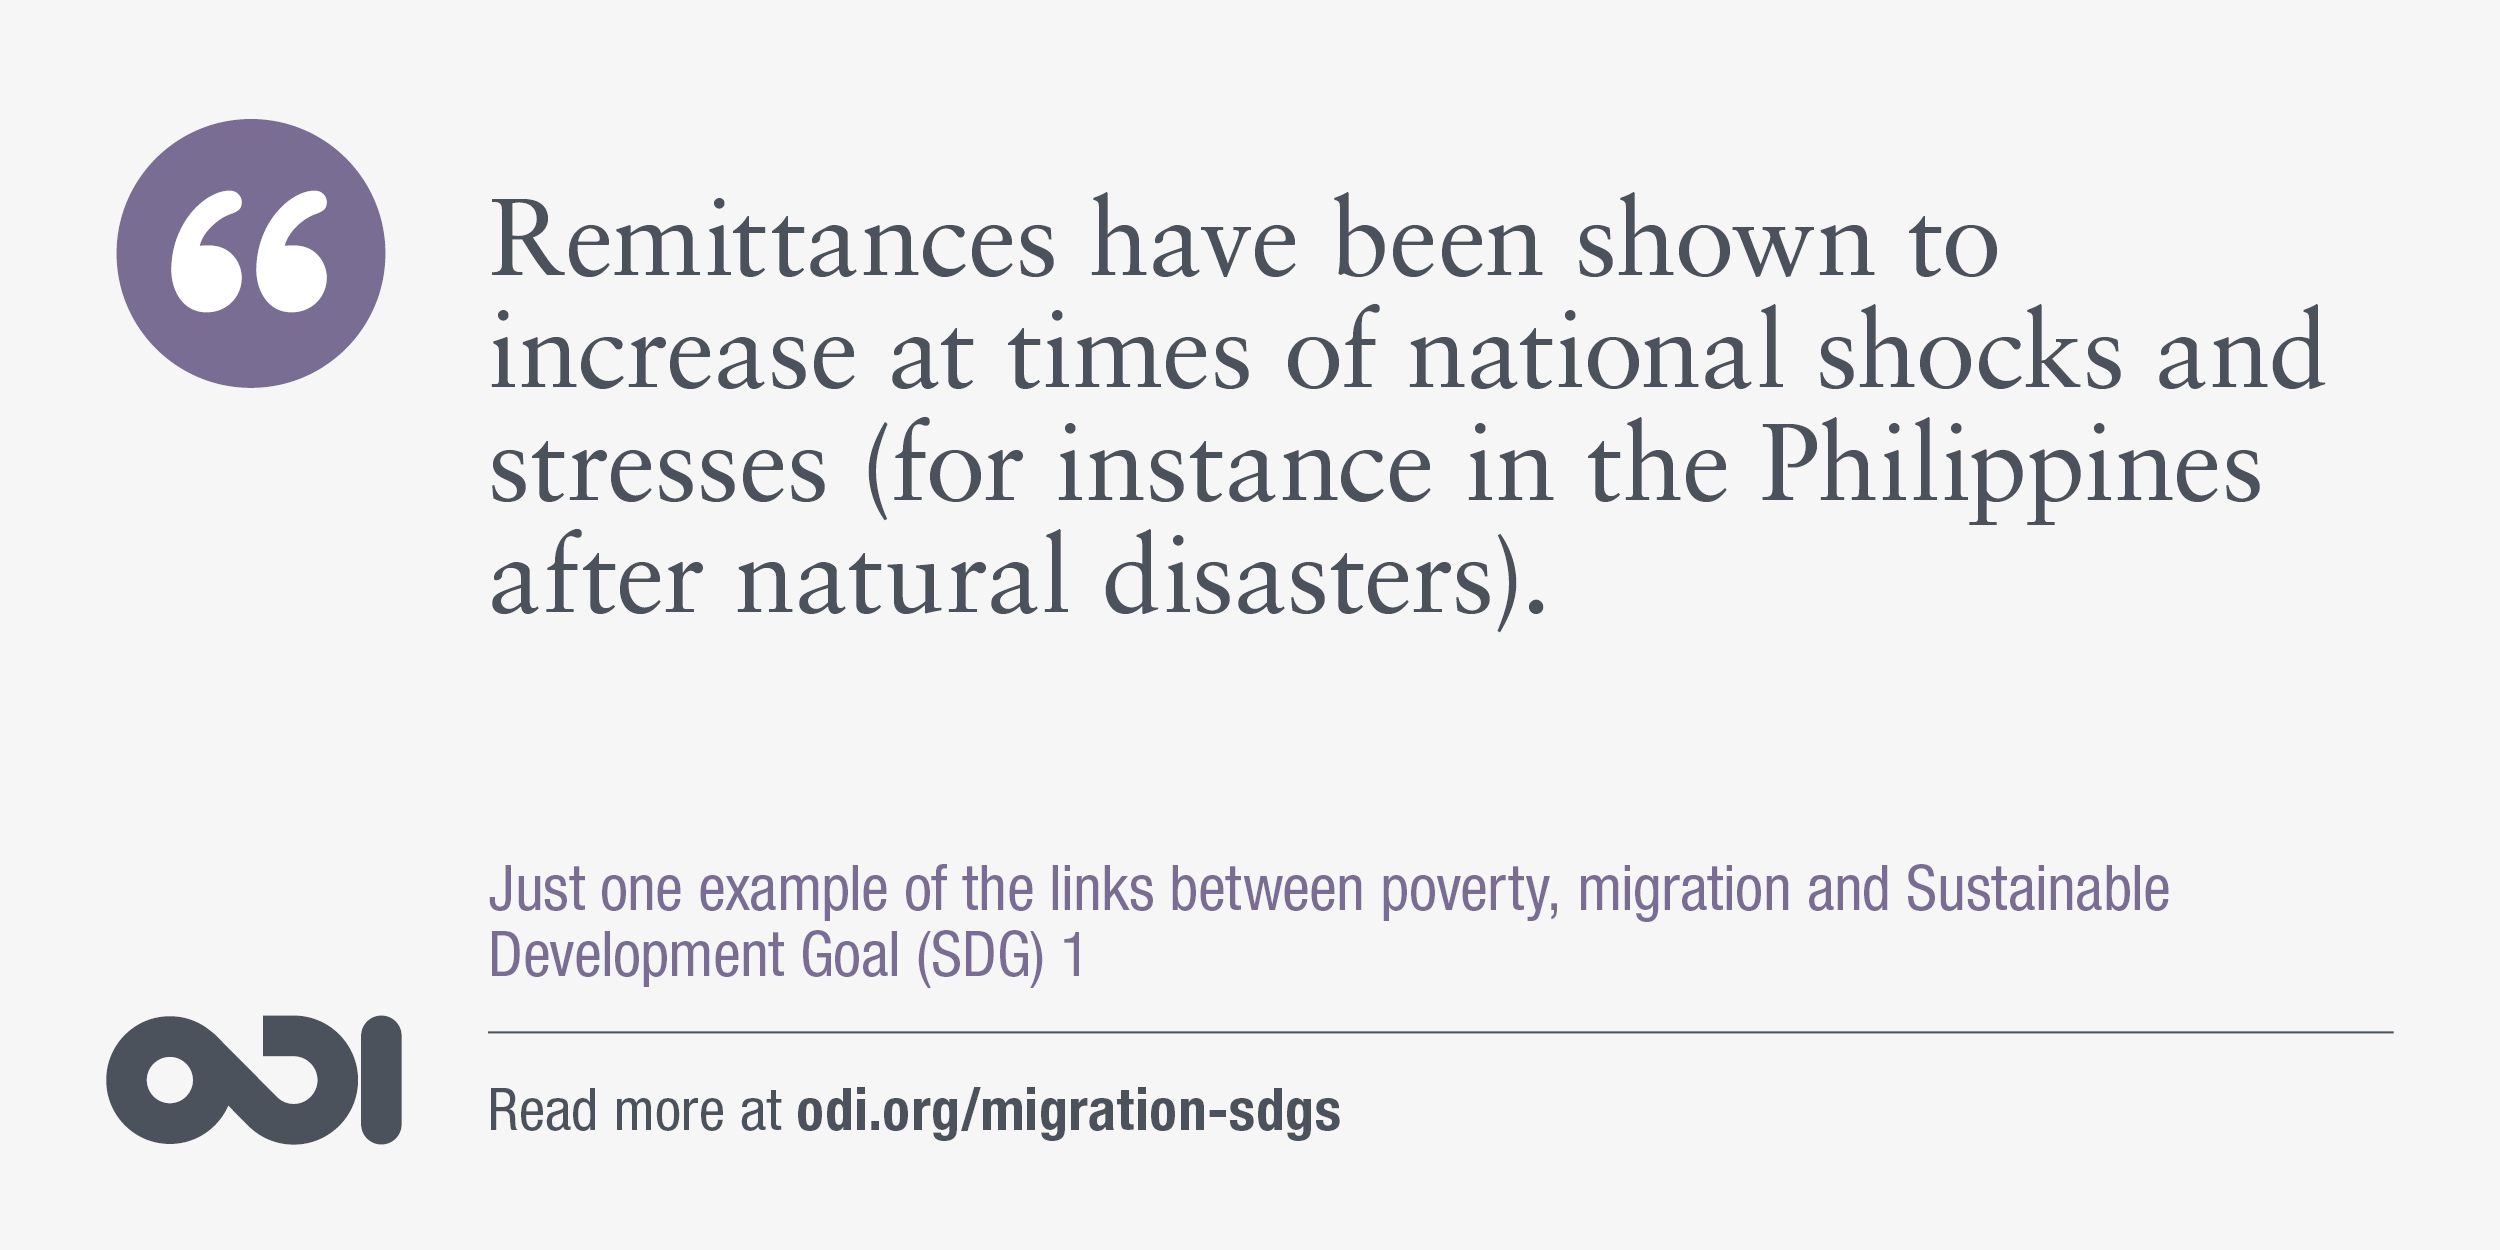 The links between poverty, migration and SDG 1.